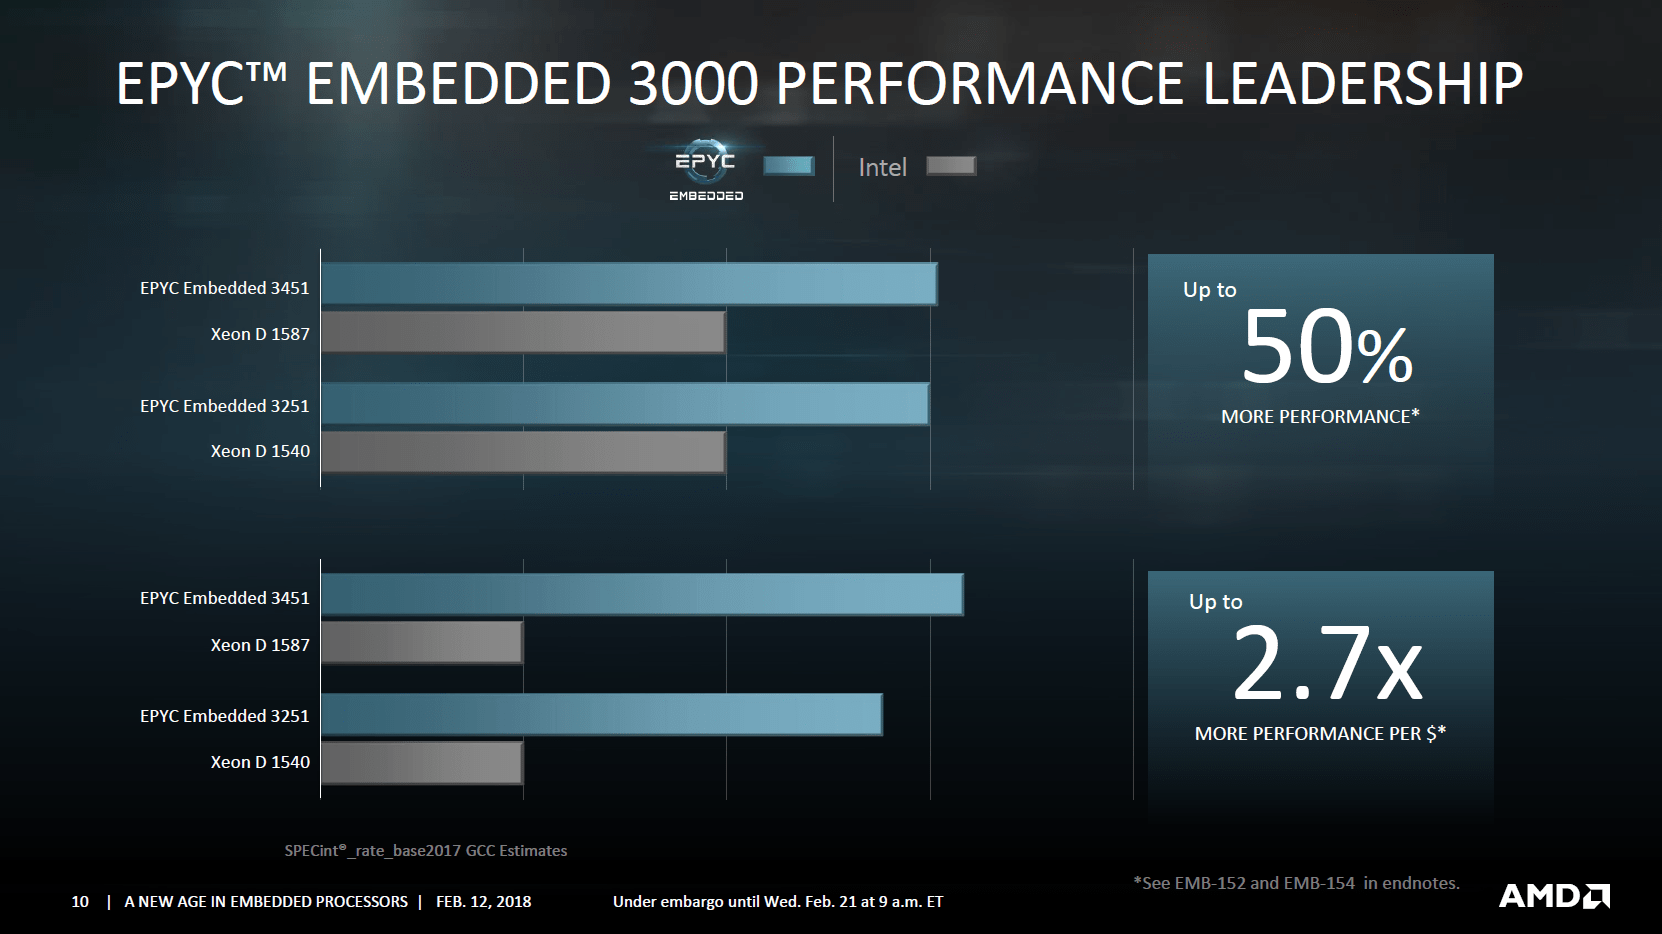 AMD Intros EPYC 3000 Series Embedded Processors - 2 7x Performance